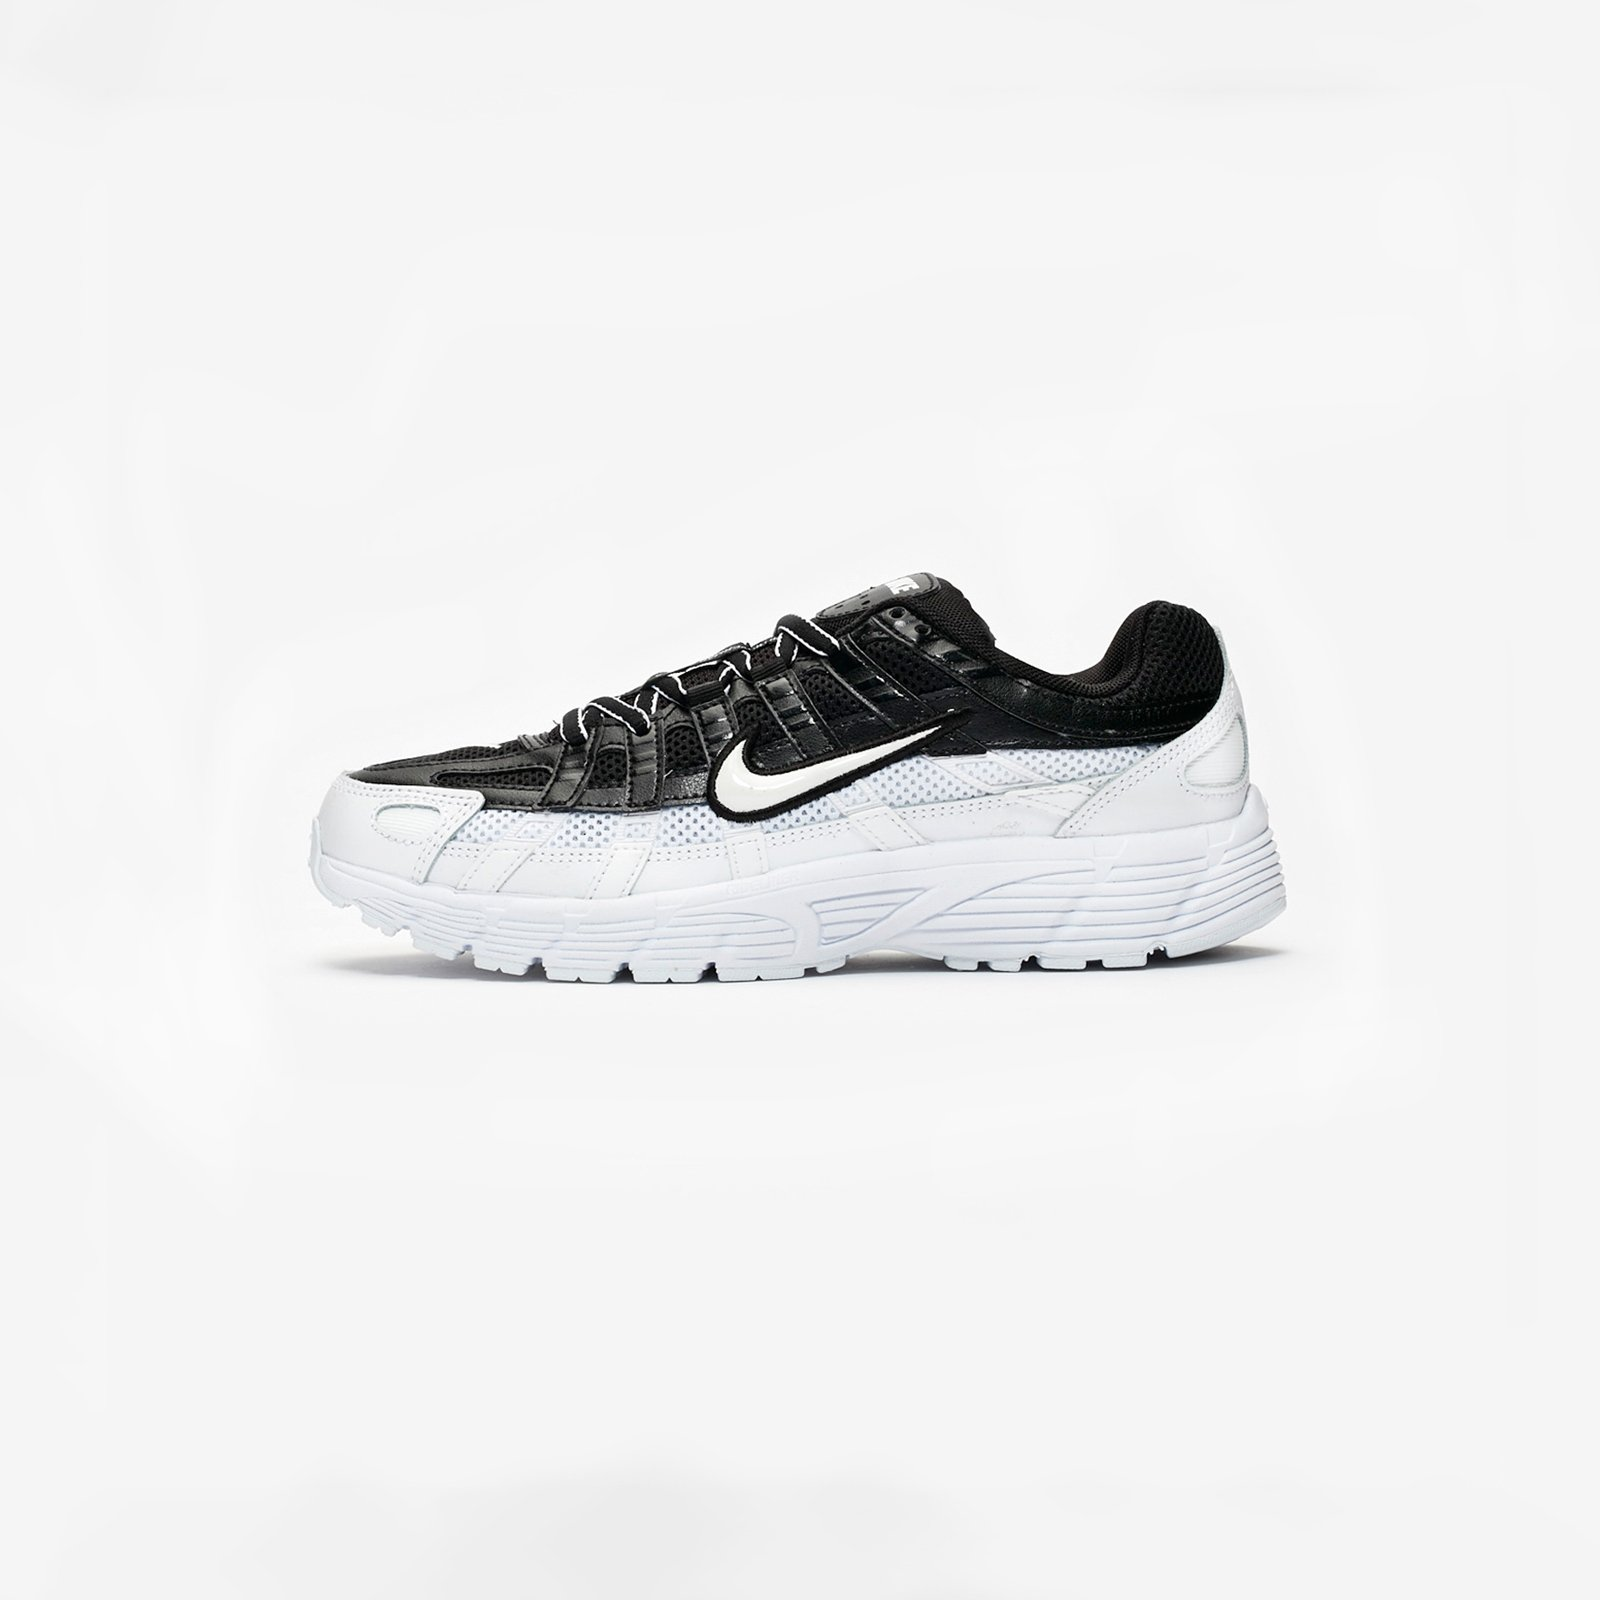 new products 2d2af e9fc3 Nike Wmns P-6000 - Bv1021-003 - Sneakersnstuff   sneakers   streetwear  online since 1999